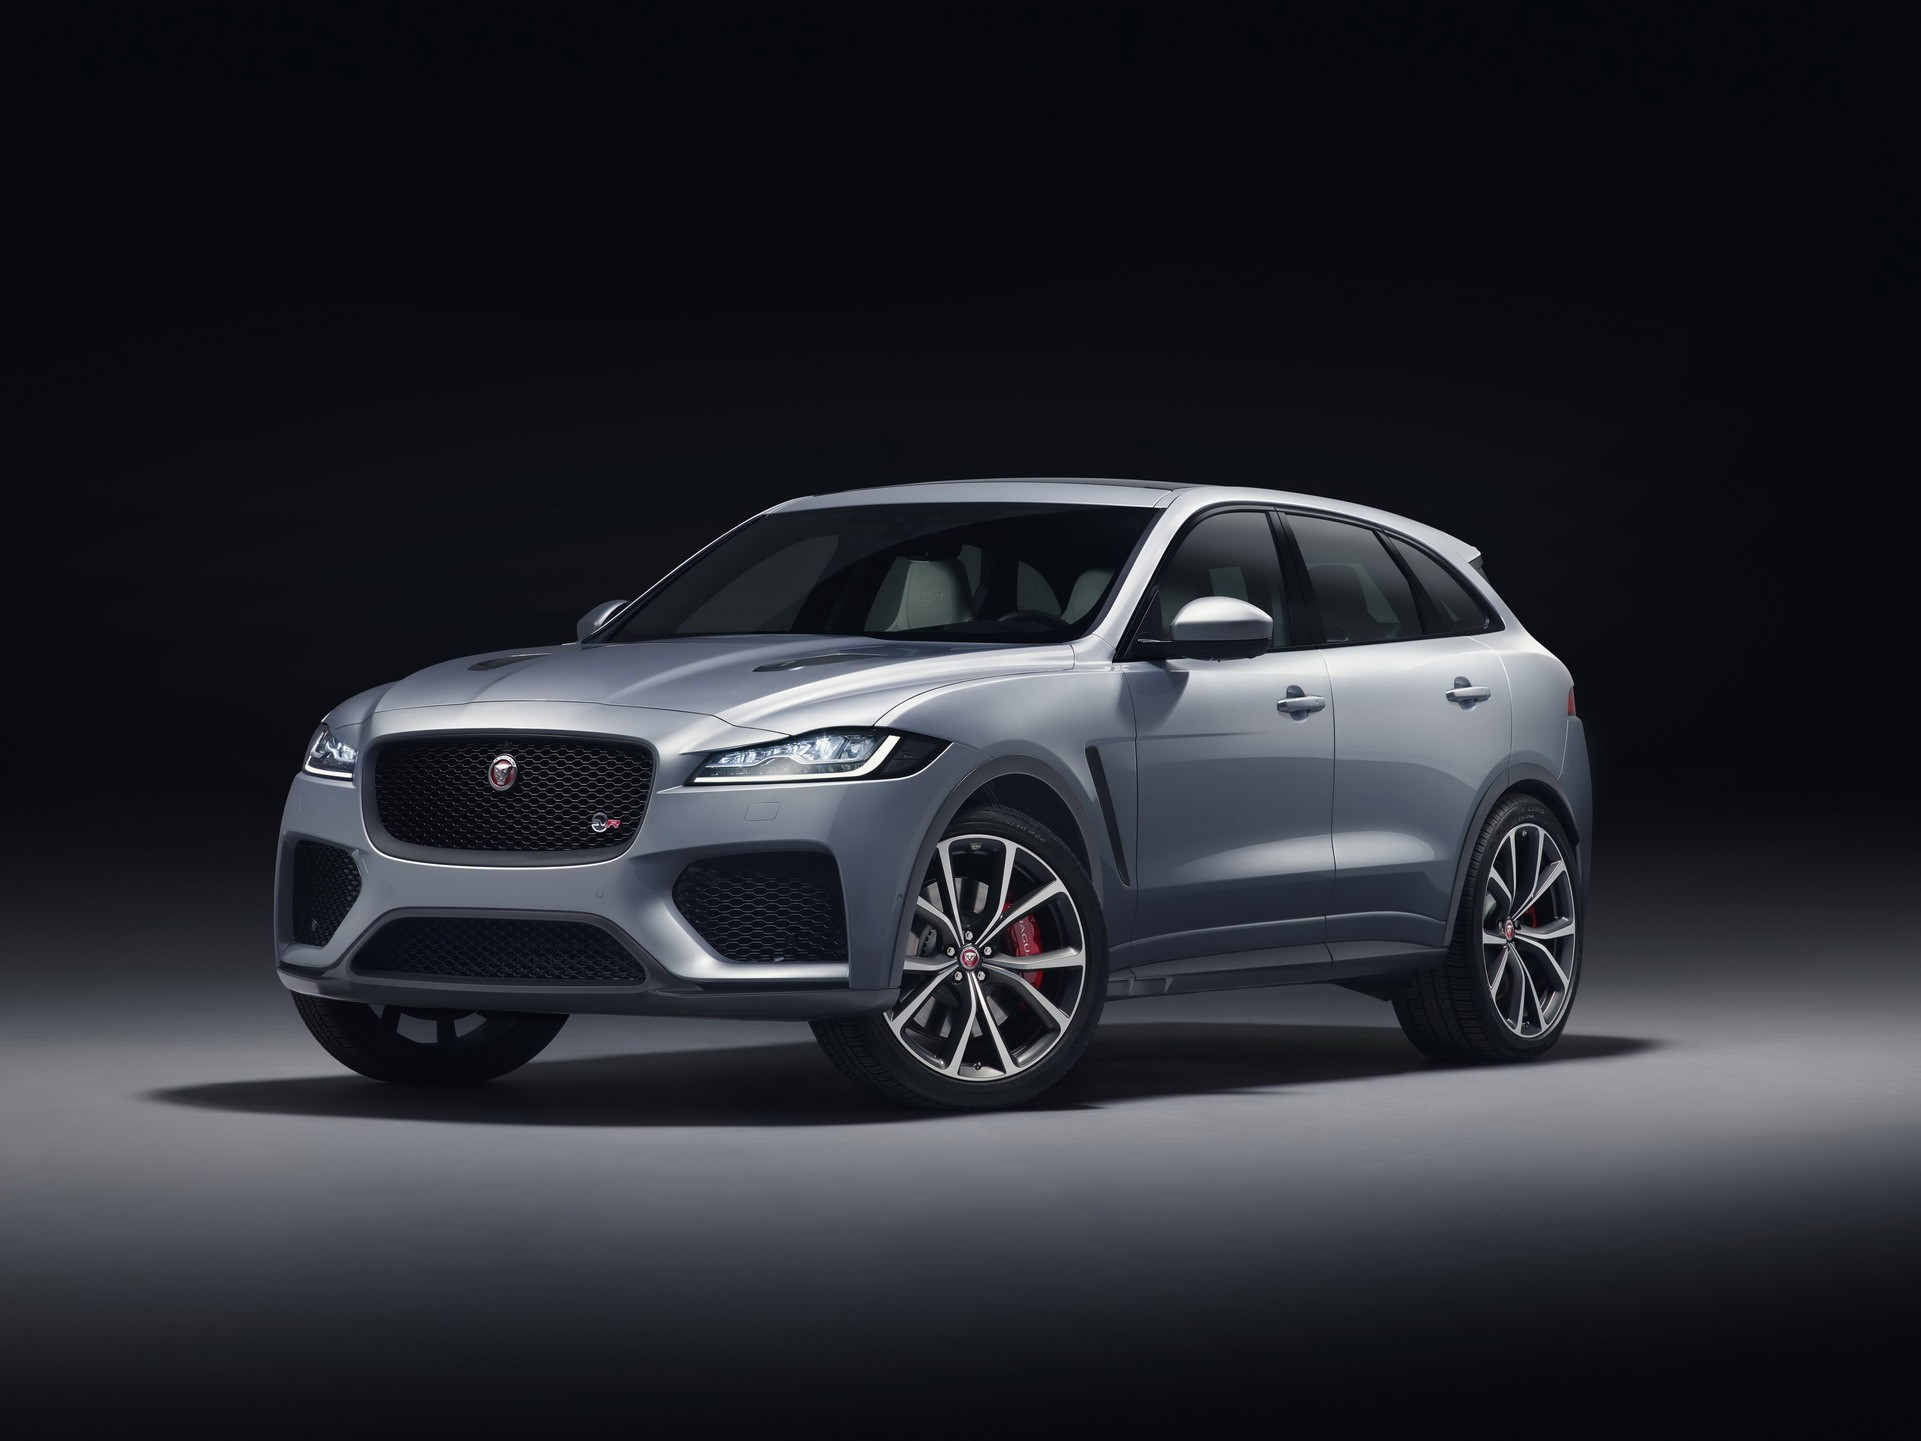 2019 Jaguar F Pace Svr Based Lister Lightning Is The